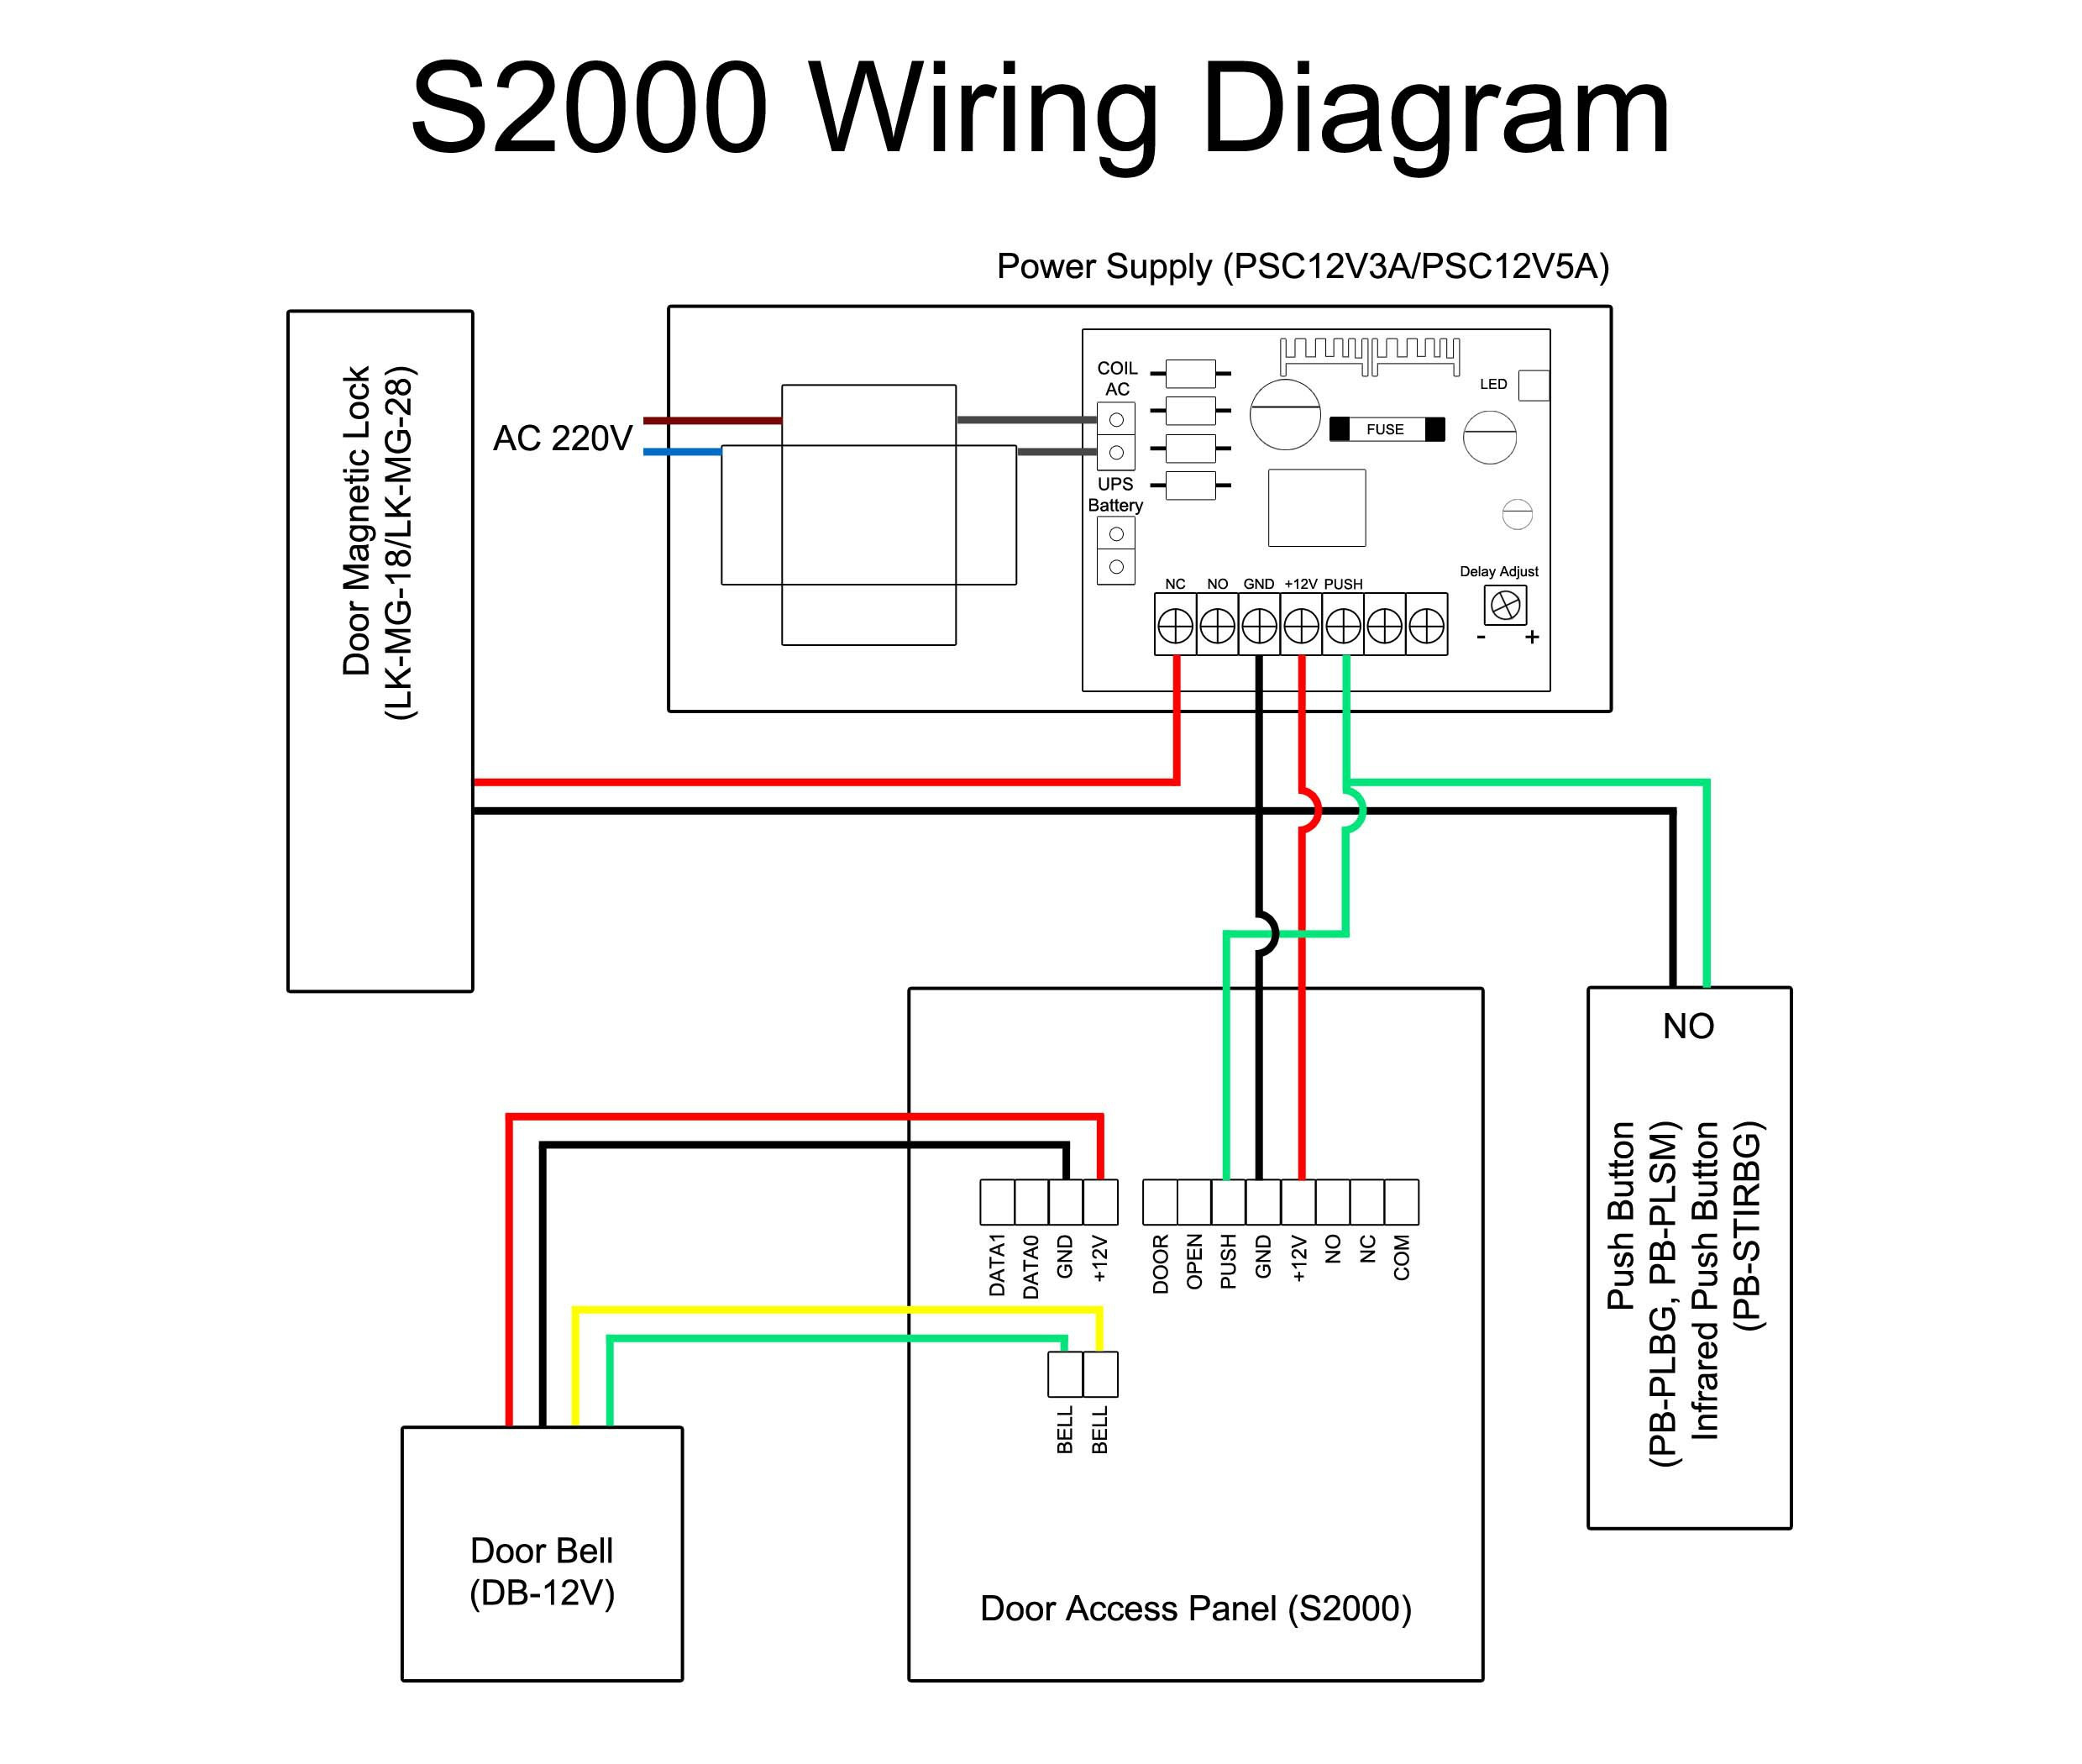 hornet 533t security wiring diagrams safety vision camera wiring diagram download #3